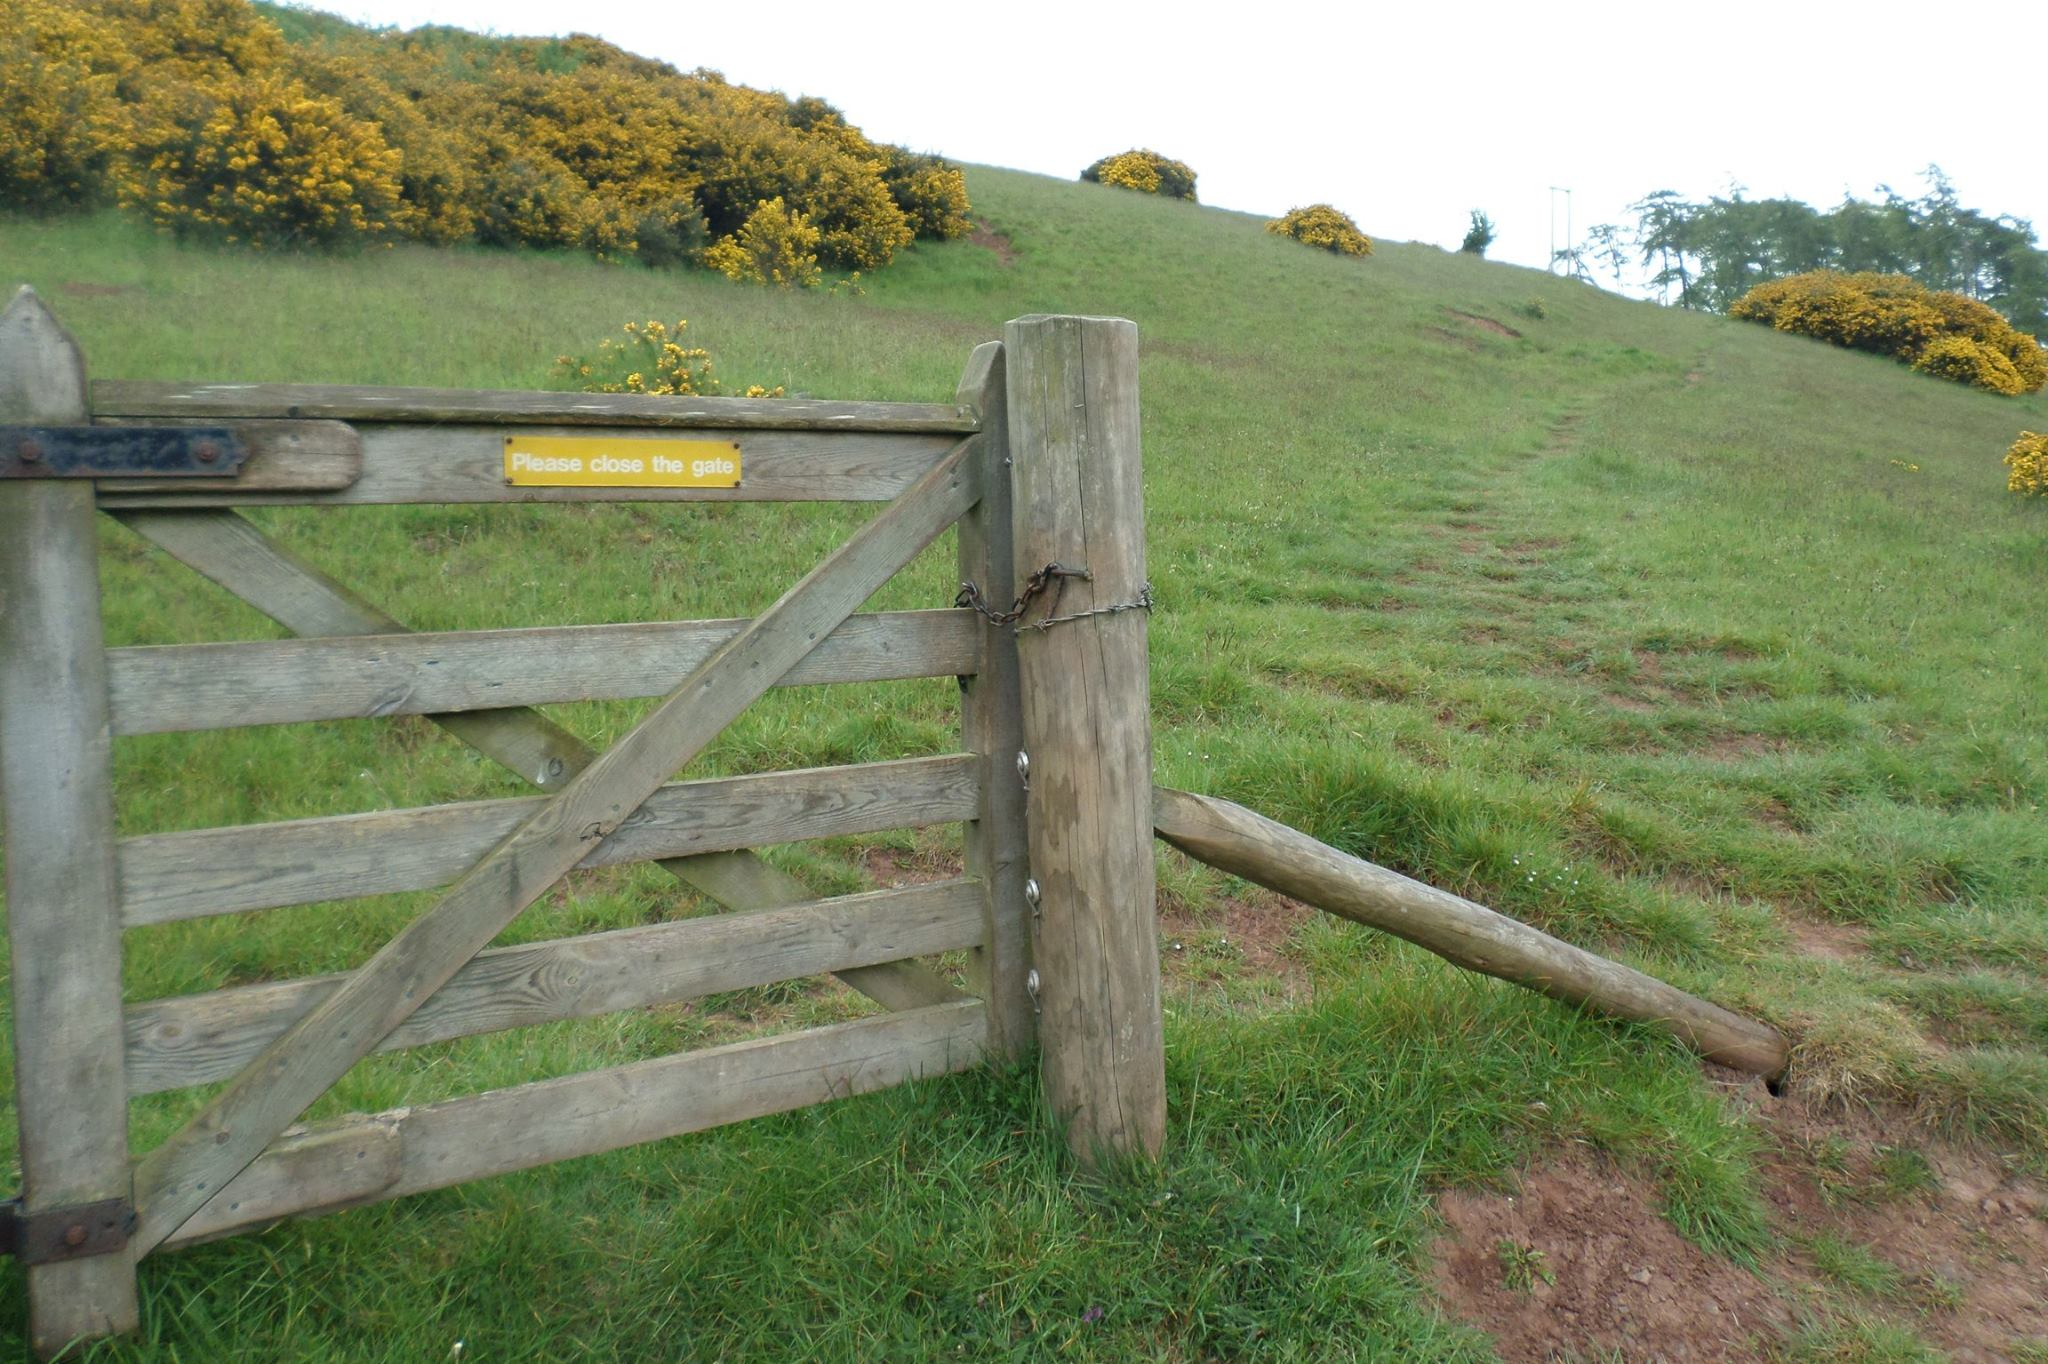 'Please close the gate' read the sign. Imagine what might happen if you didn't, wondered Gillian Nicholl.